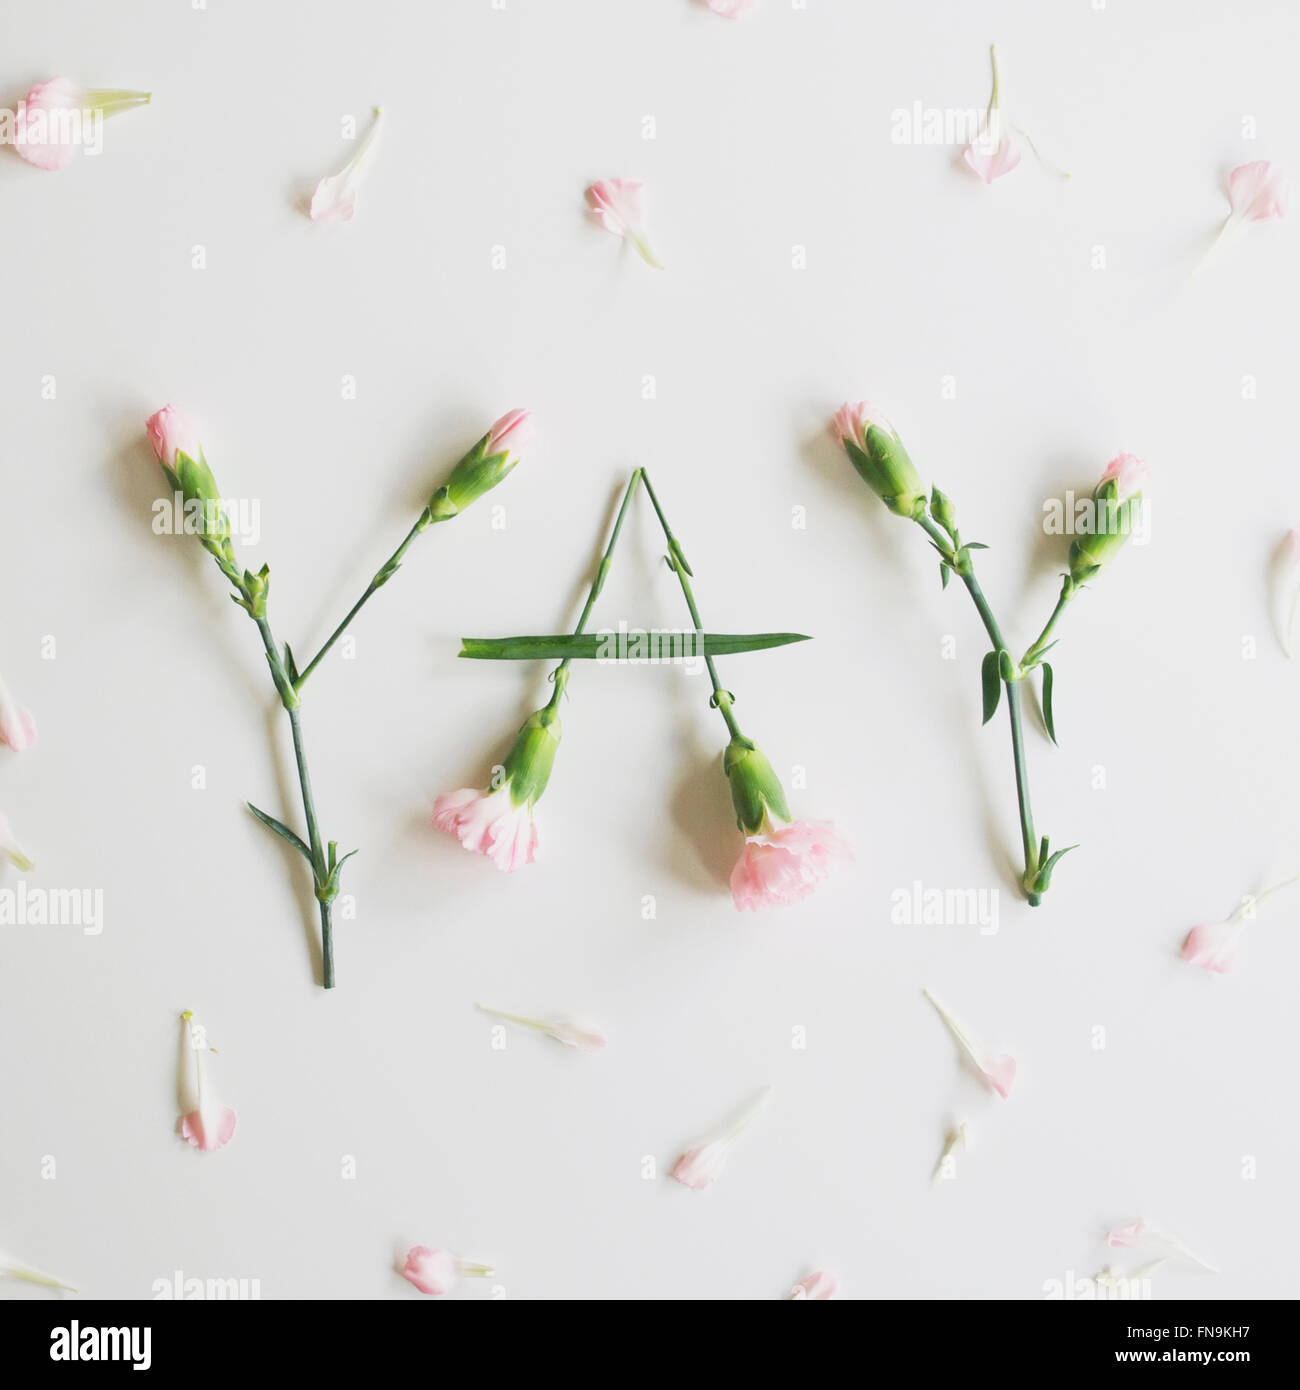 YAY spelled out with carnations - Stock Image